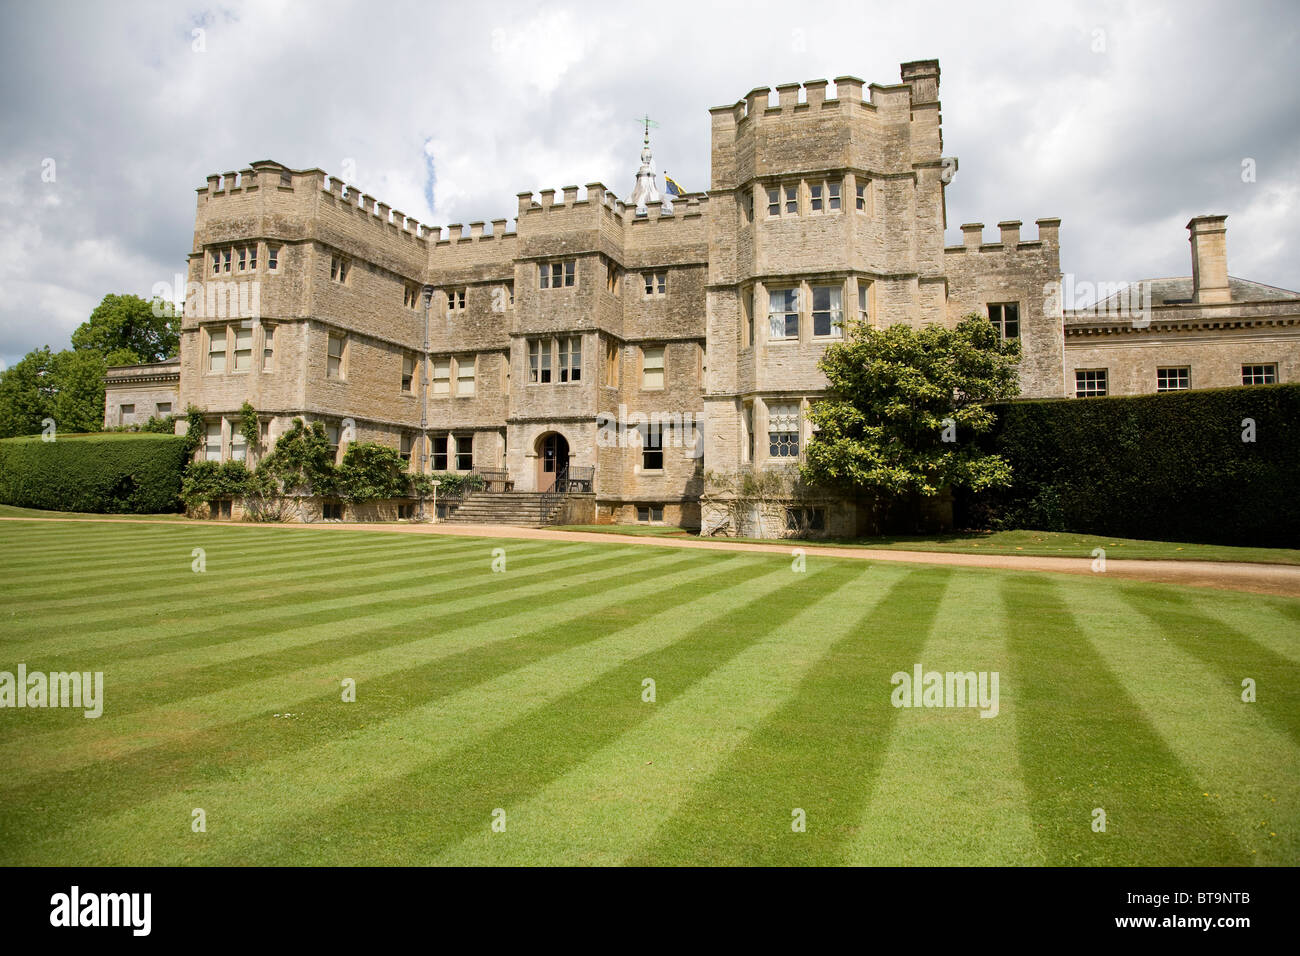 Rousham Park House and Gardens, Oxfordshire. England - Stock Image